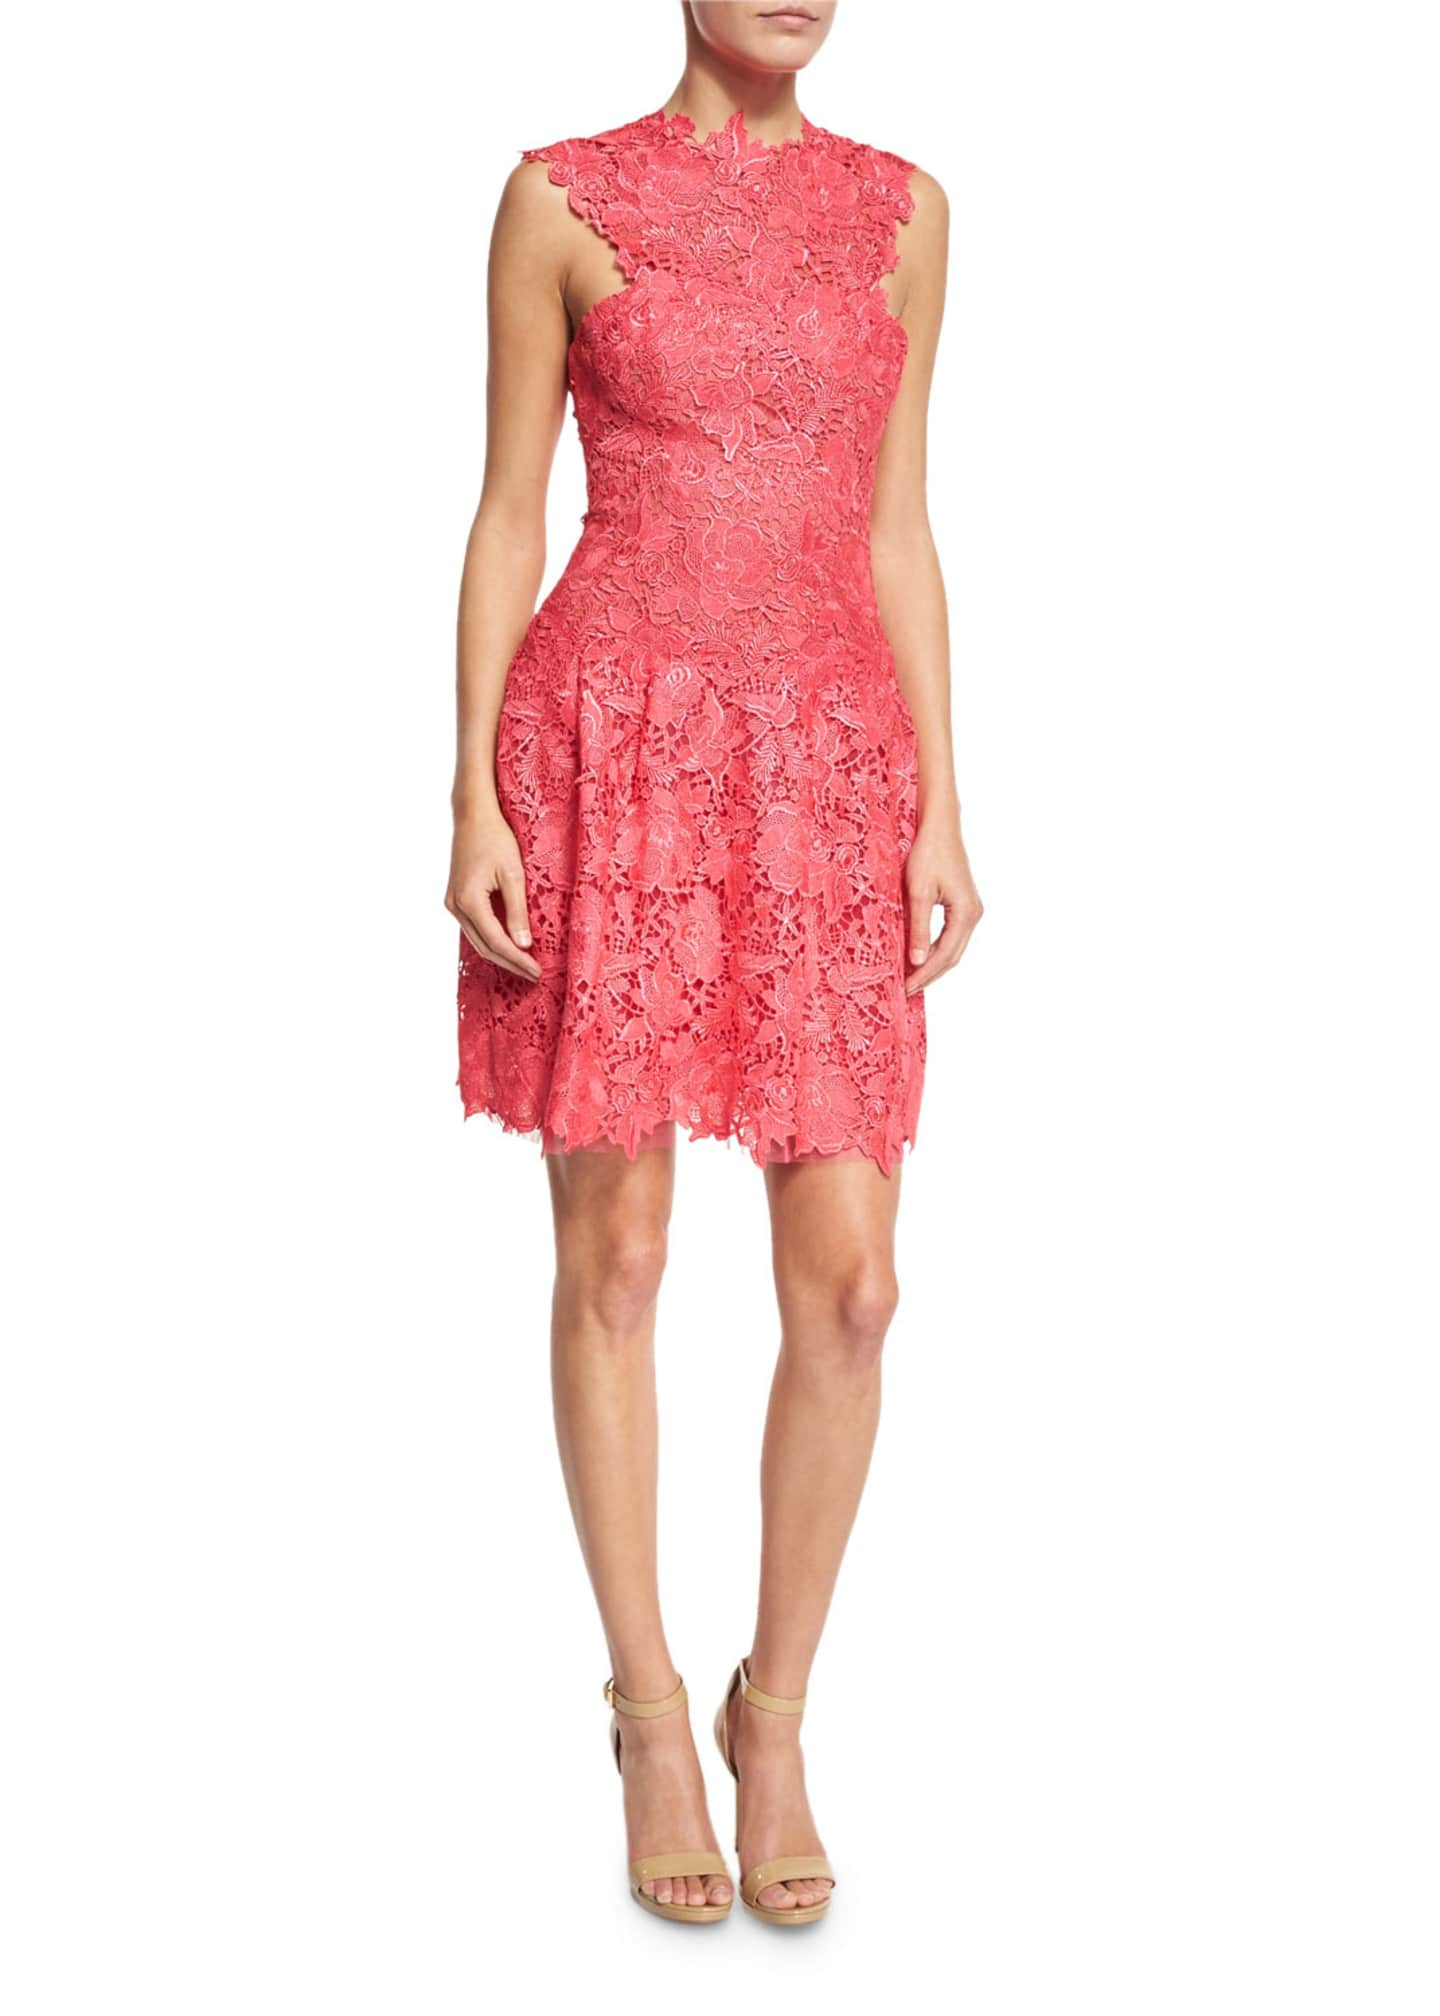 Monique Lhuillier Sleeveless Guipure Lace Cocktail Dress, Red